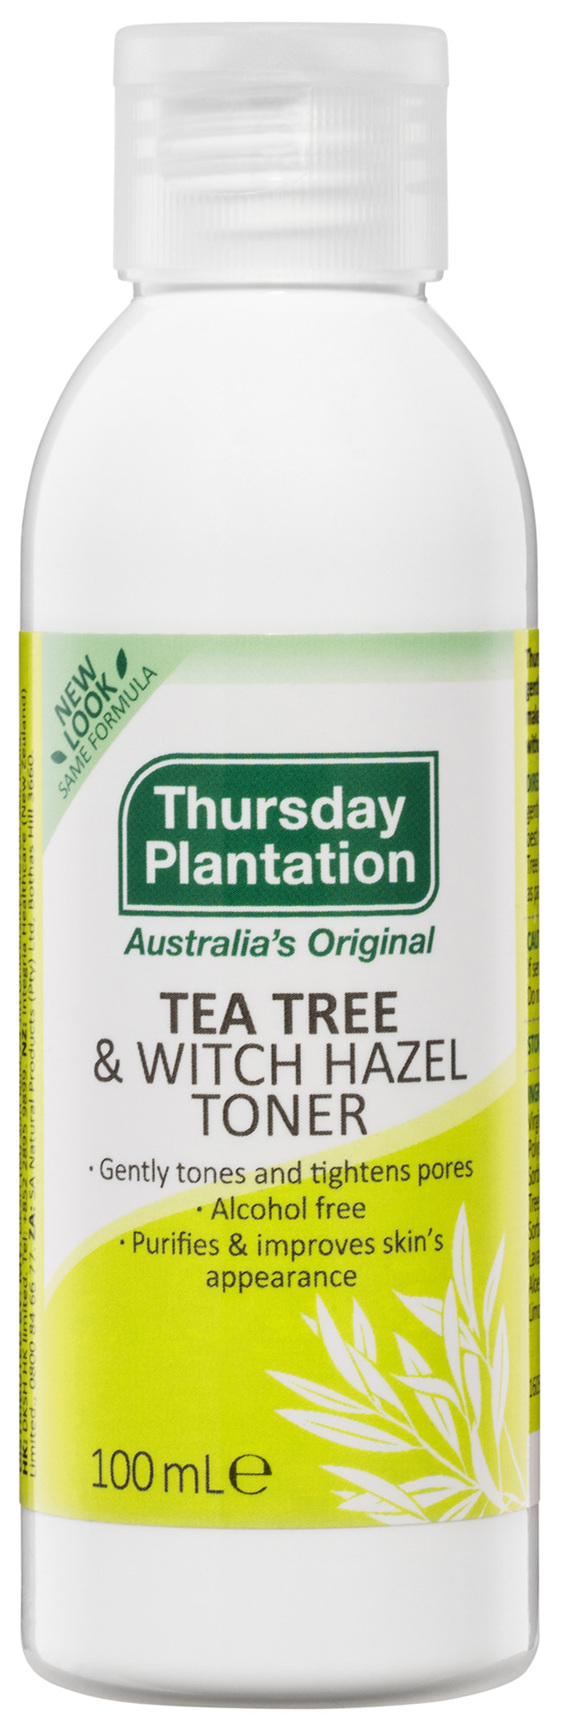 Thursday Plantation Tea Tree & Witch Hazel Toner 100mL